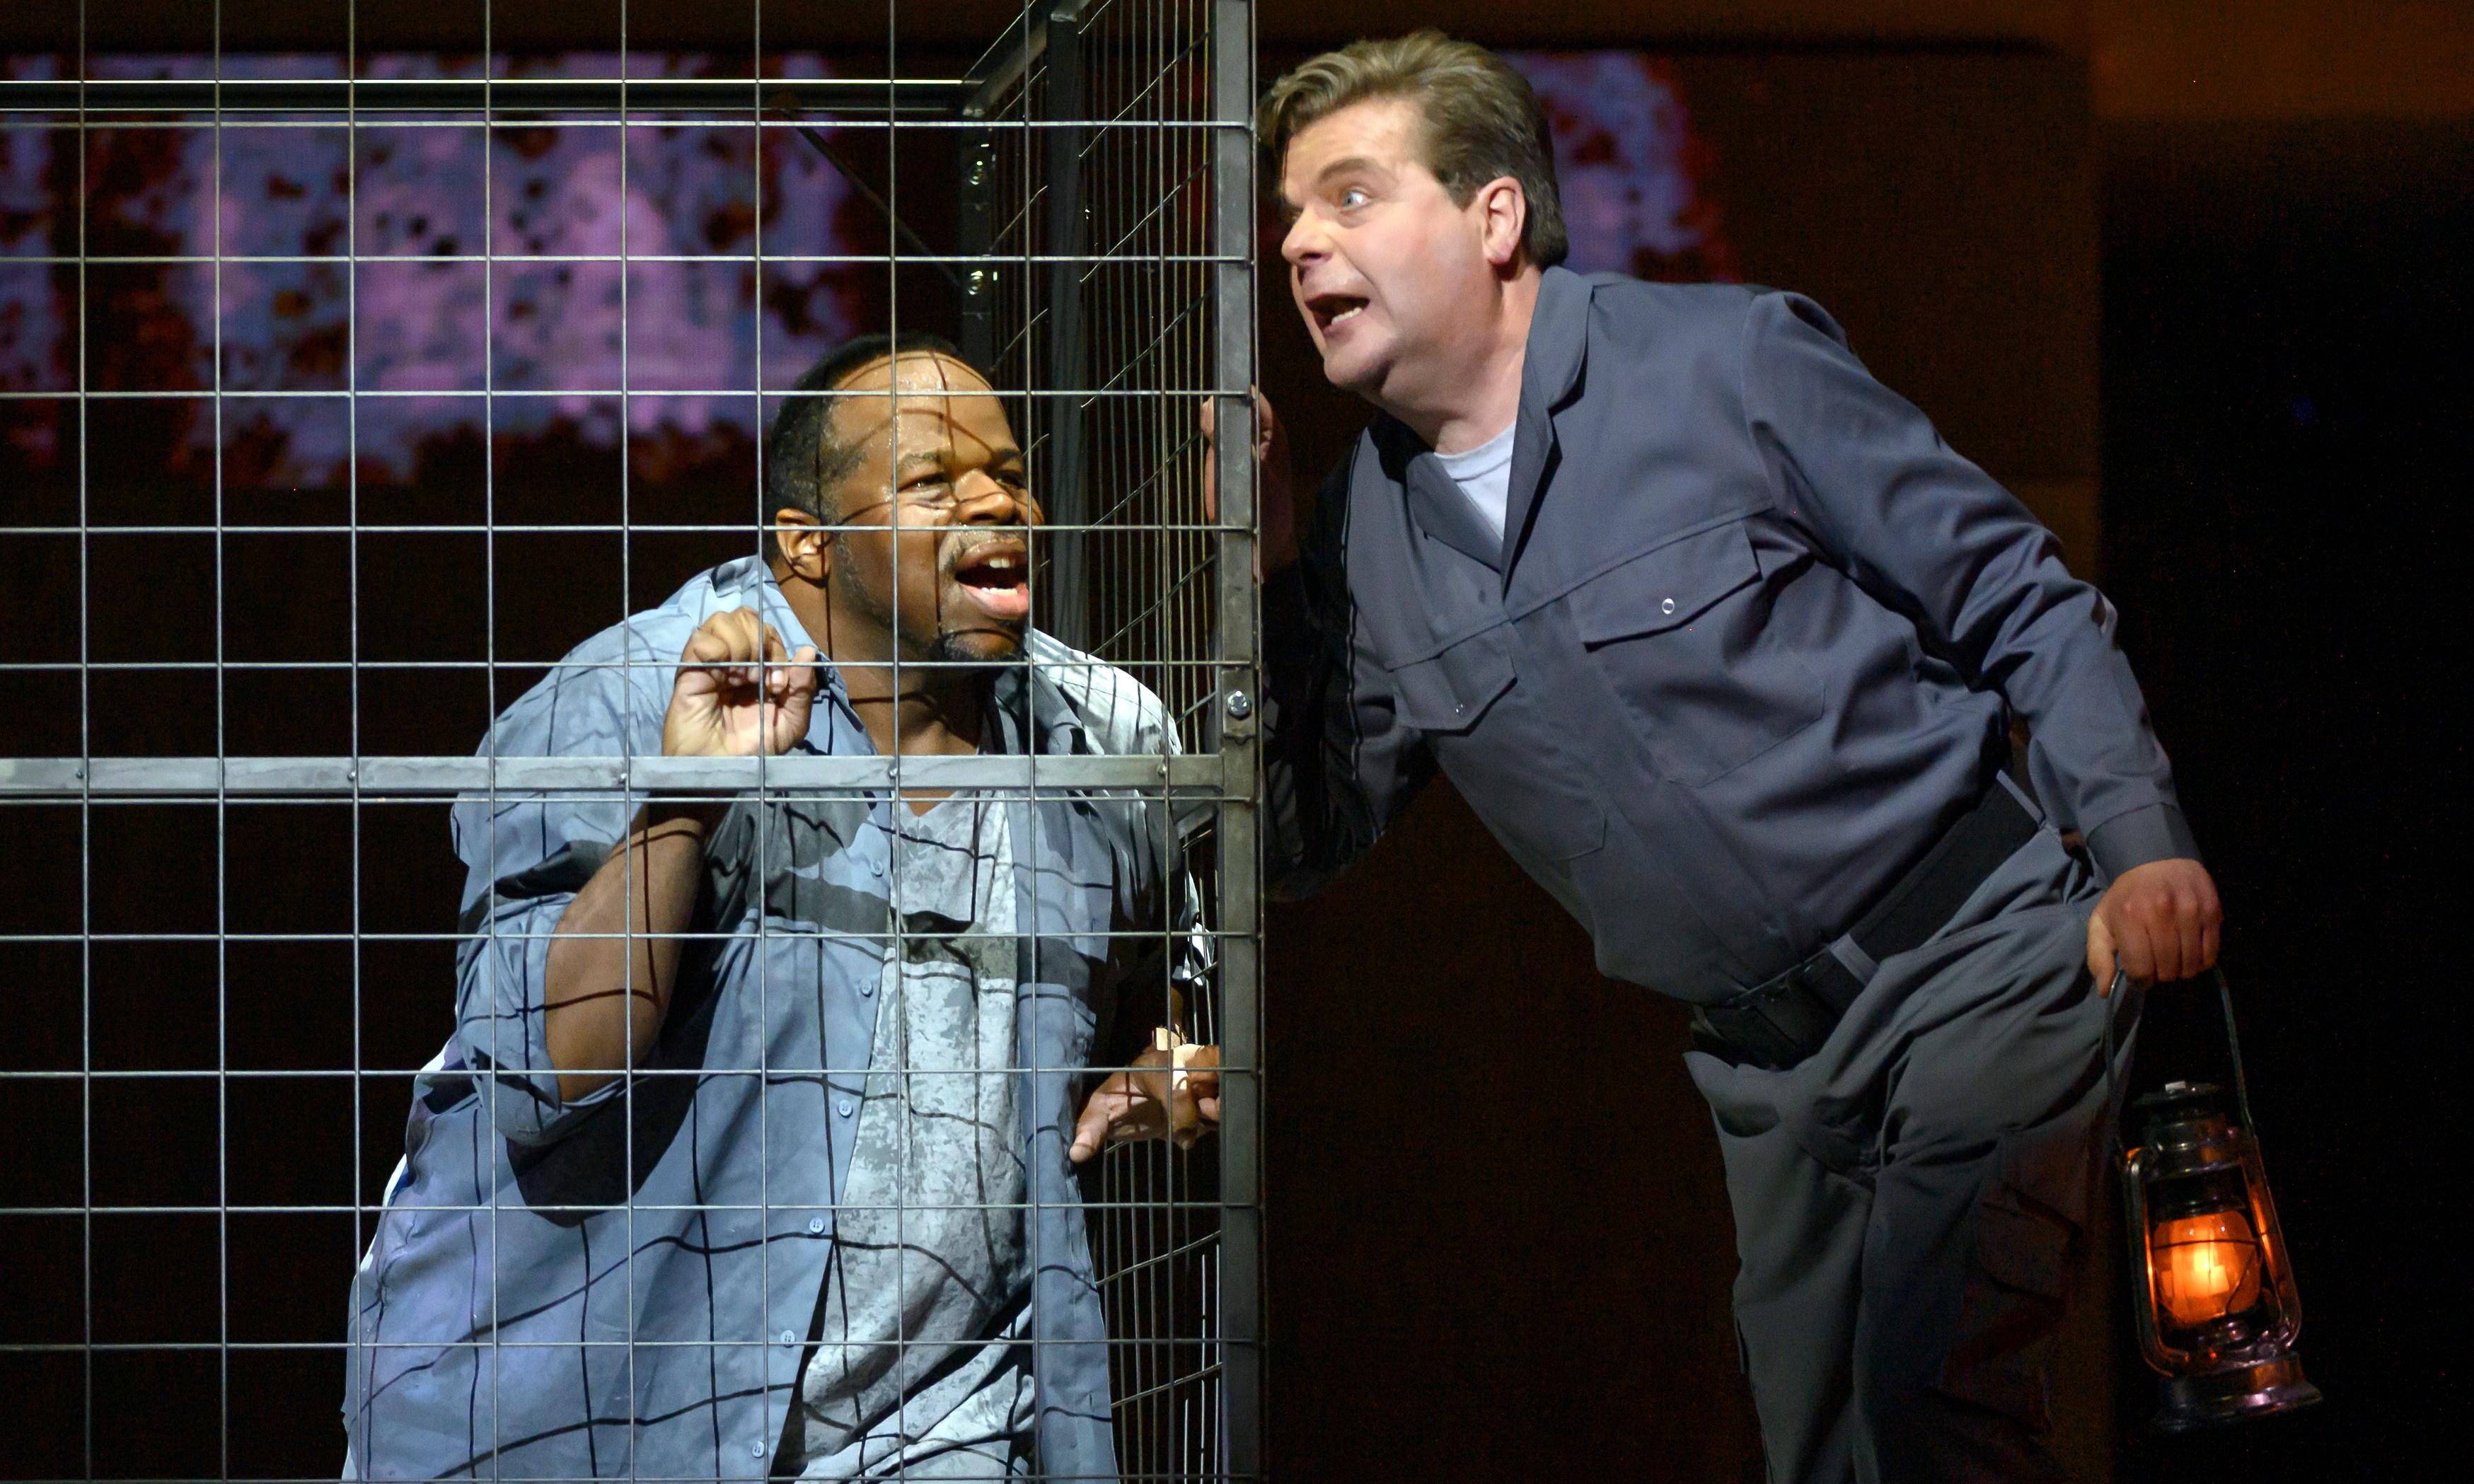 Il Prigioniero/Fidelio review – inspired pairing probes depths of good and evil